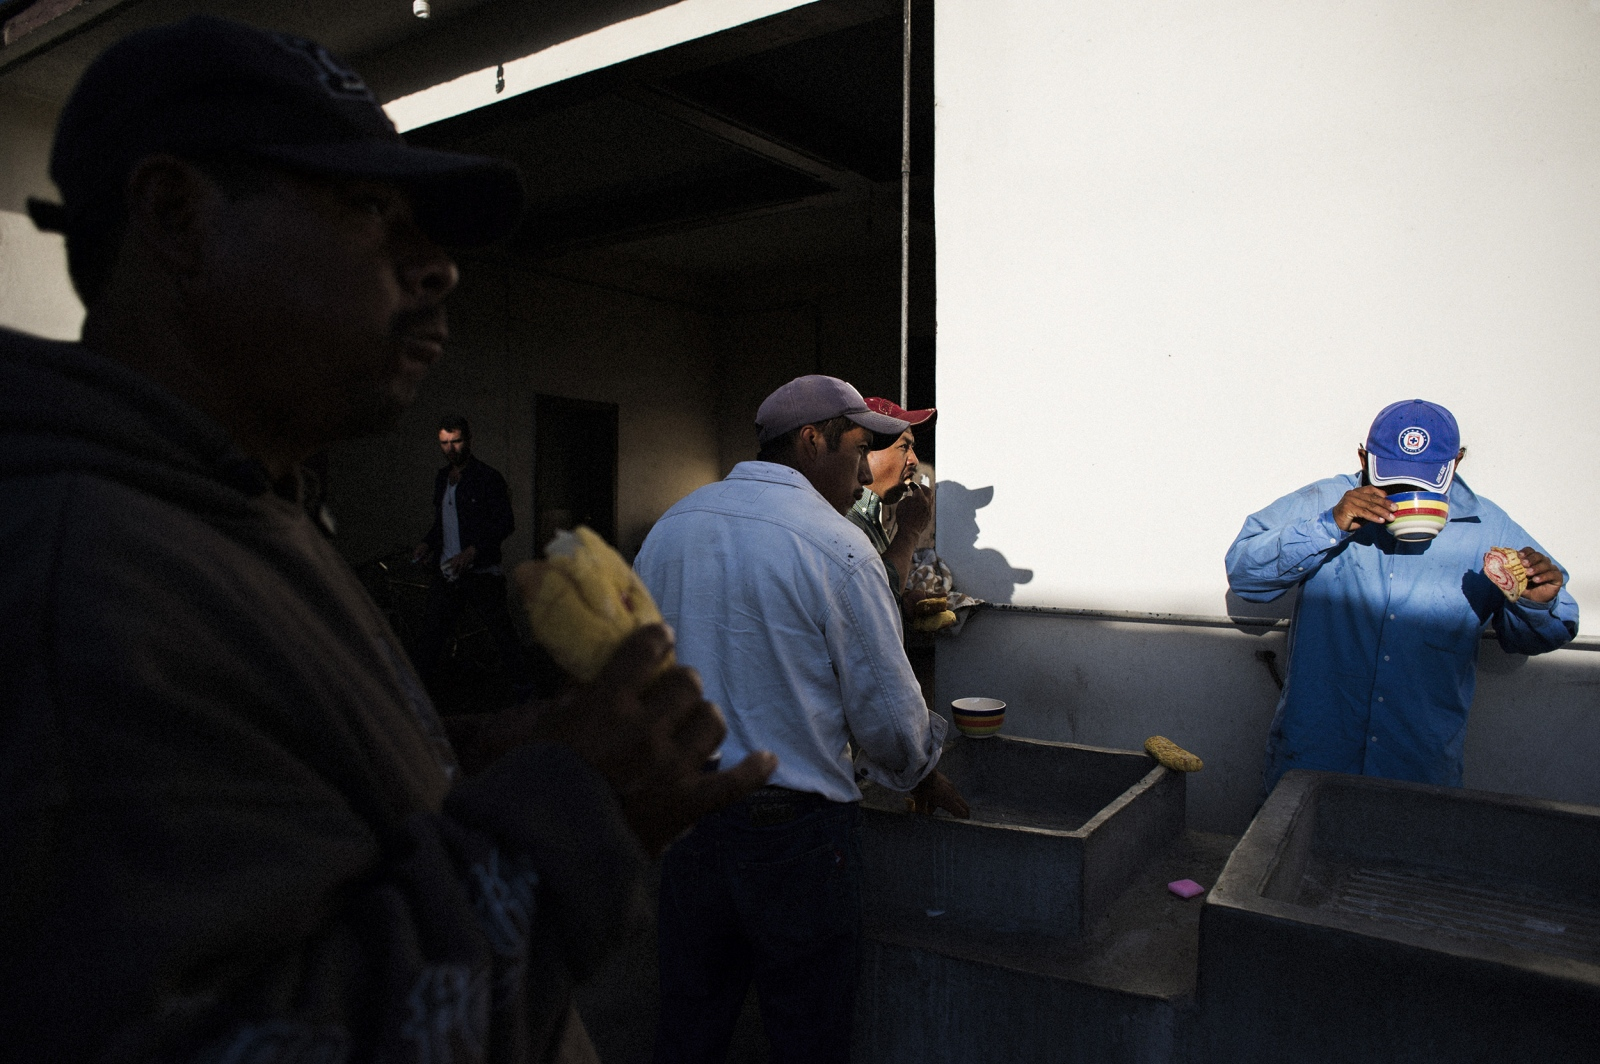 Workers fill up on pan dulce and hot cocoa before heading into the field to harvest agave.